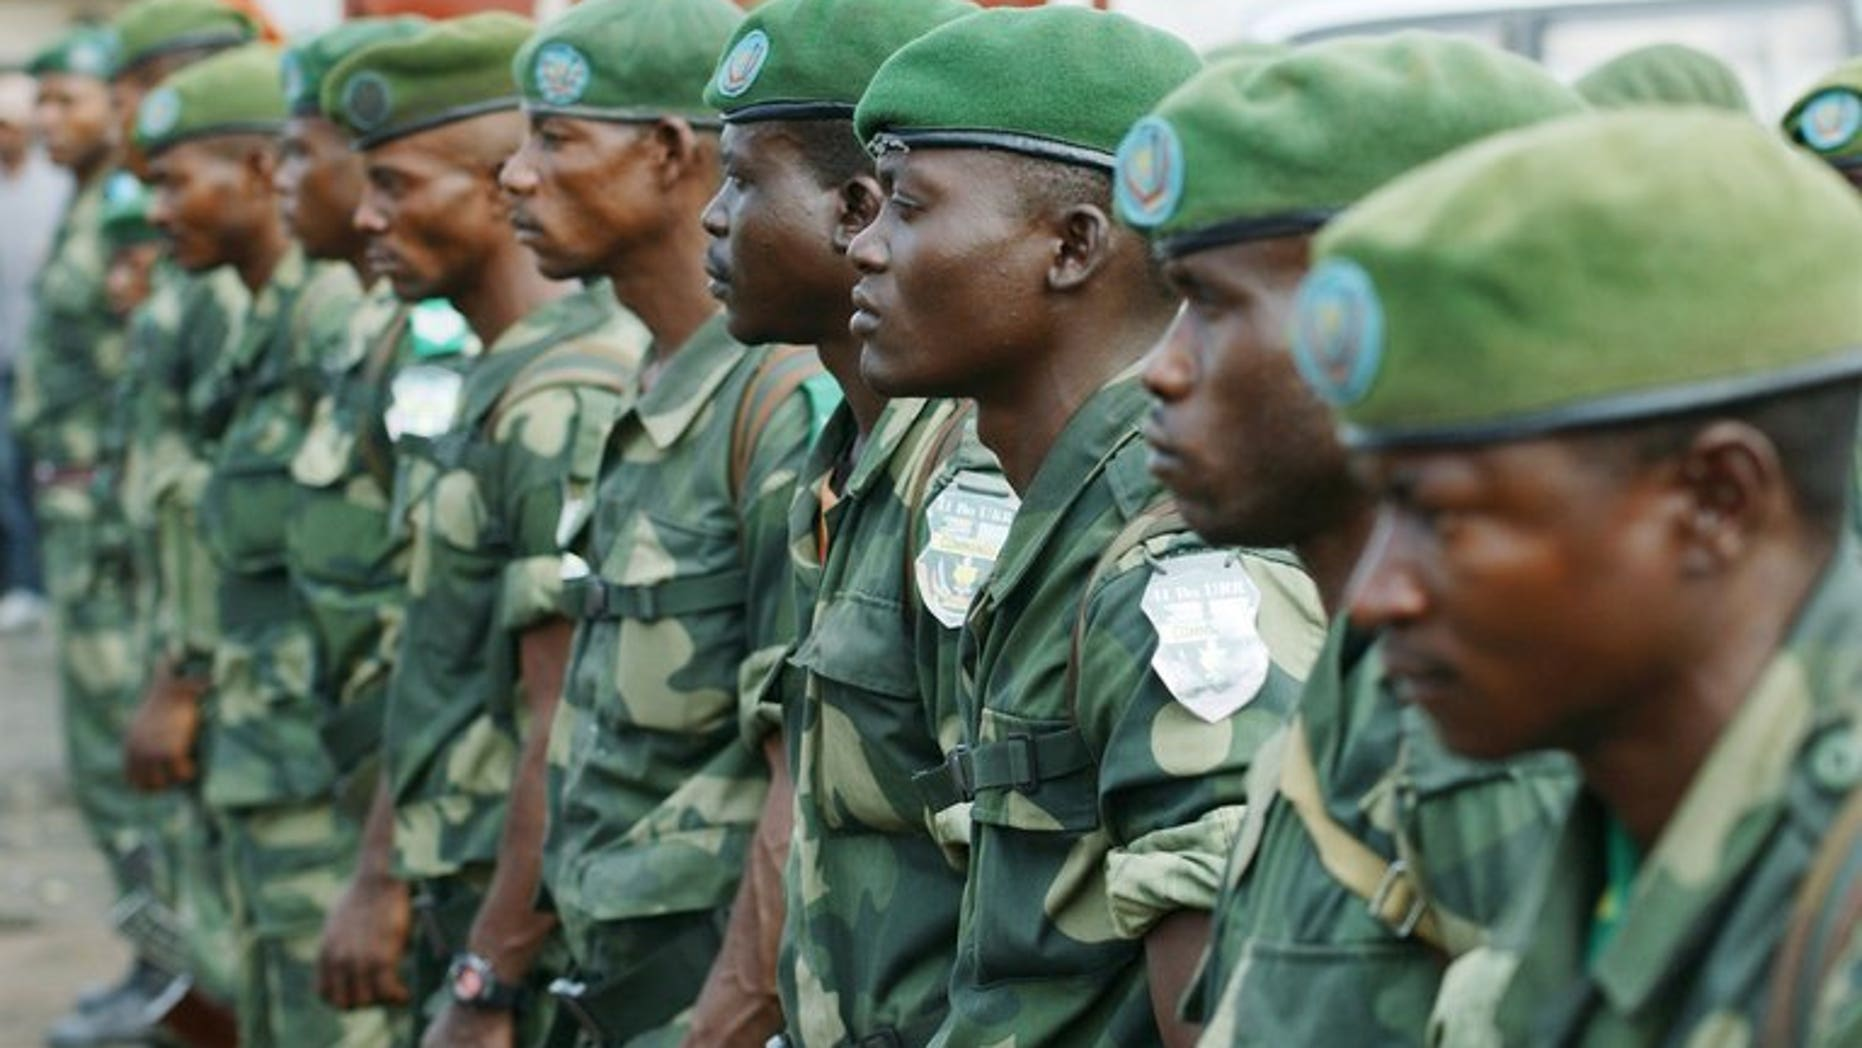 DR Congo's national army FARDC soldiers stand in formation in Karisimbi, south of Goma, on May 27, 2013. Rwanda's military spokesman said two mortar bombs were fired into the country from neighbouring DR Congo on Monday, blaming the DRC army - the FARDC - and the UN force MONUSCO.